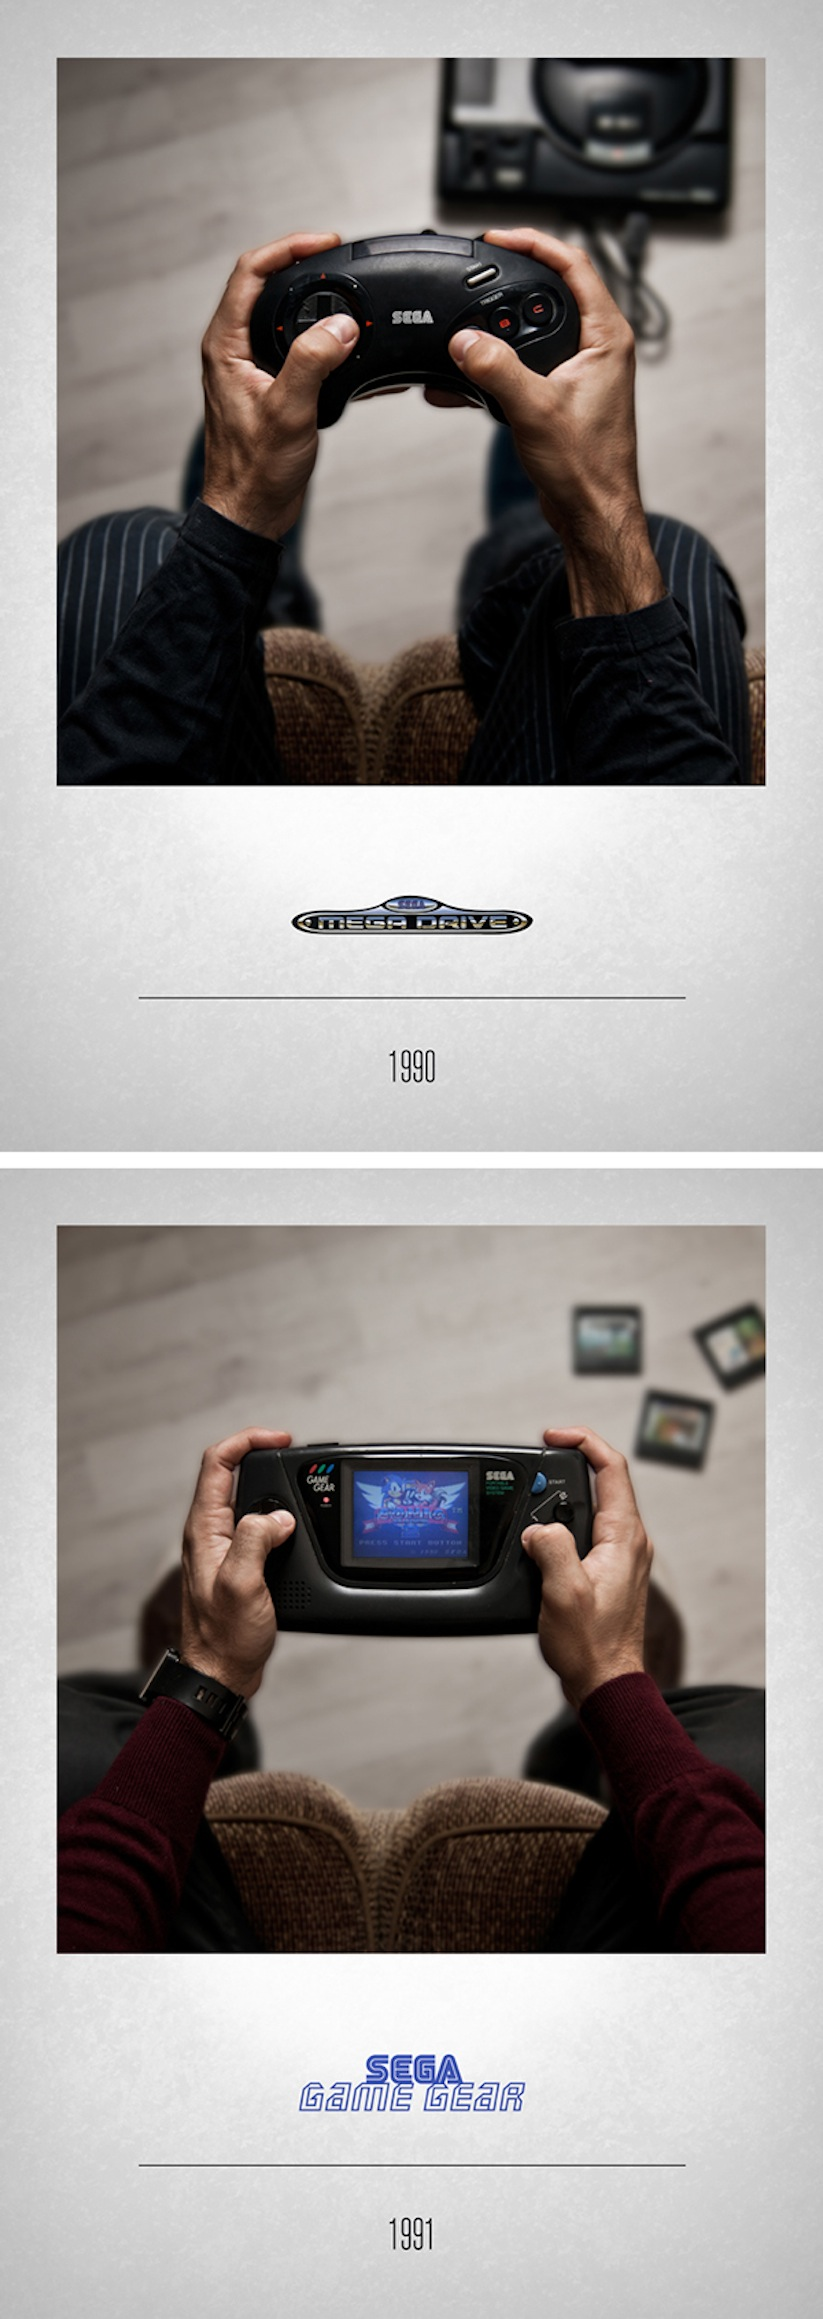 video games history_javier laspiur_4